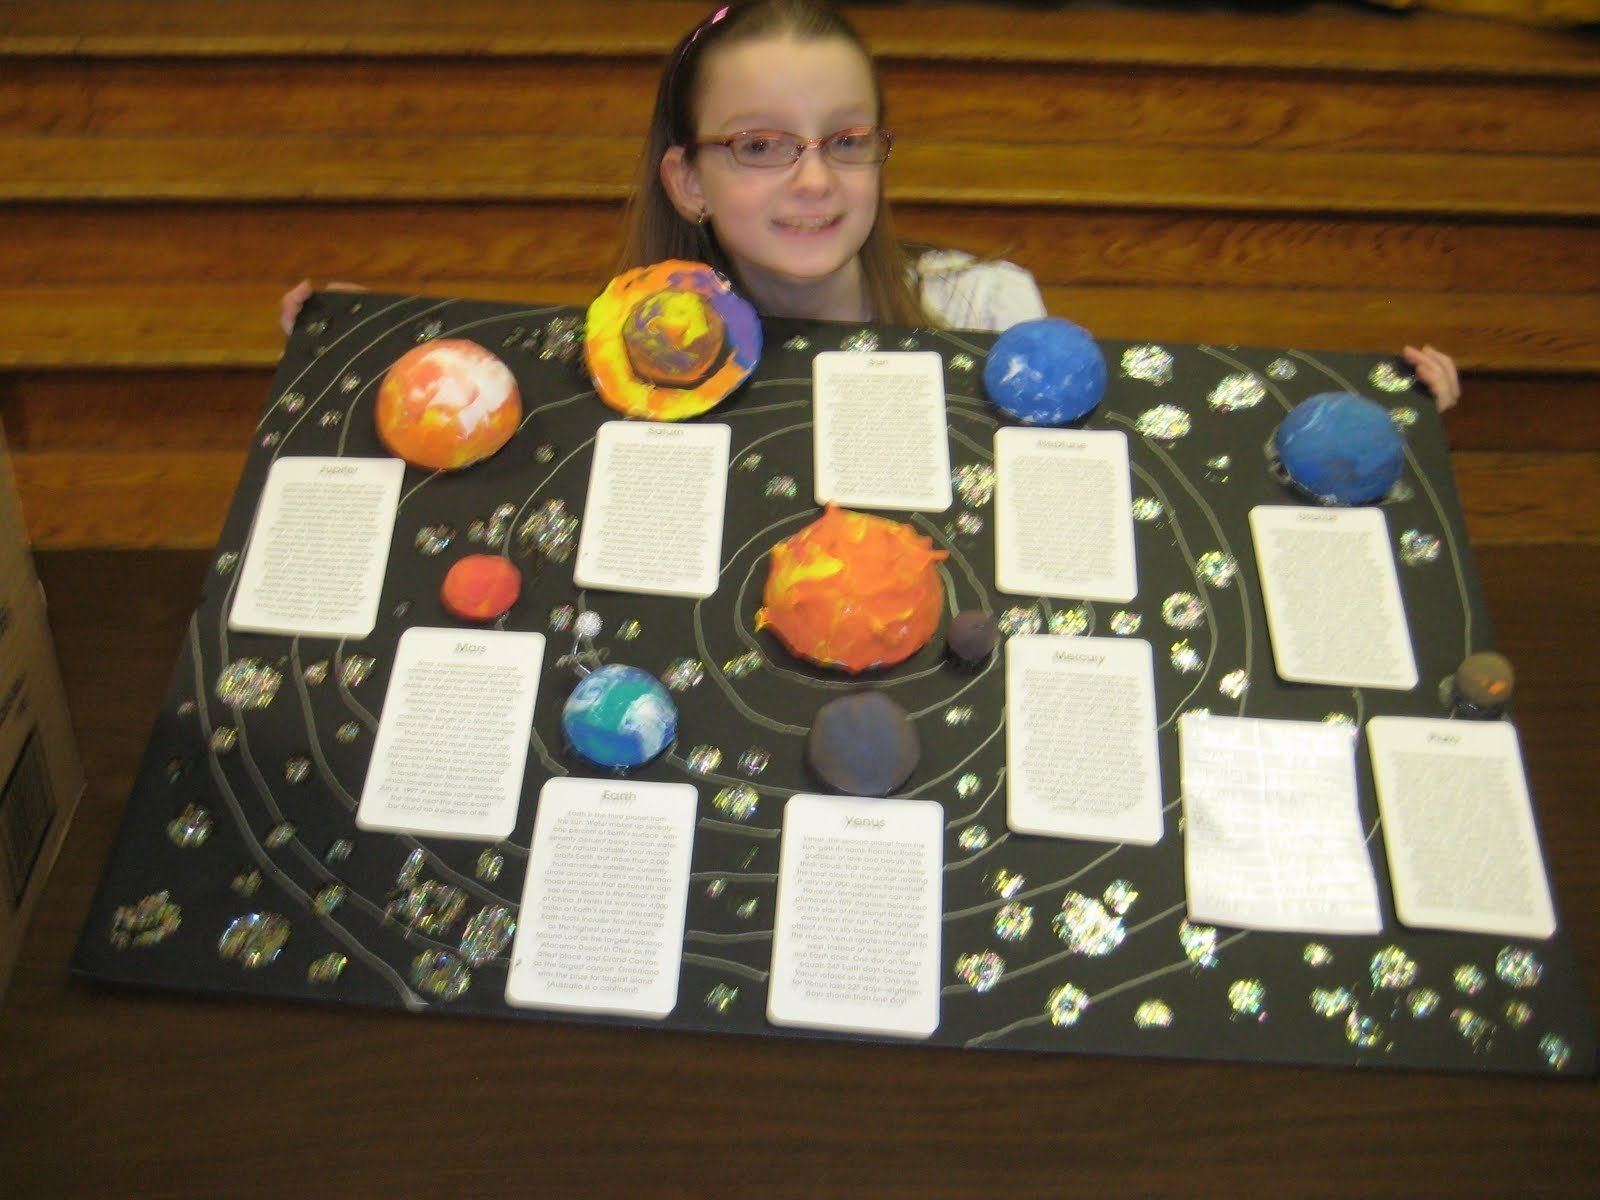 10 Elegant 3Rd Grade Science Fair Ideas 3rd grade science fair projects google search the boys 2 2021